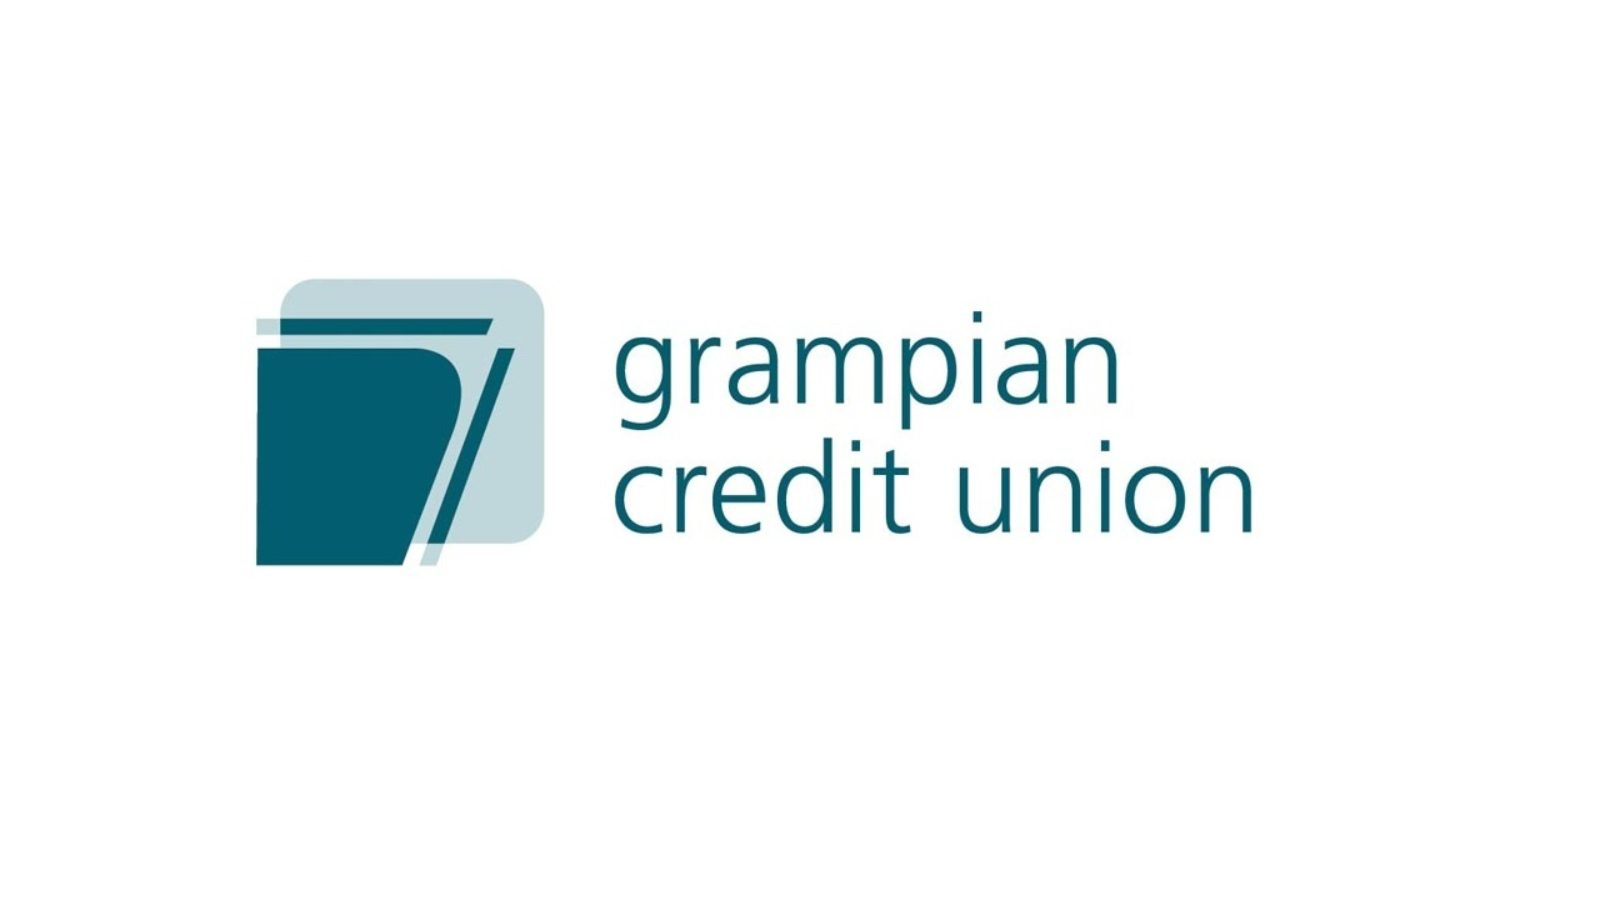 Your Credit Union needs you… Come and help shape the future of Grampian Credit Union